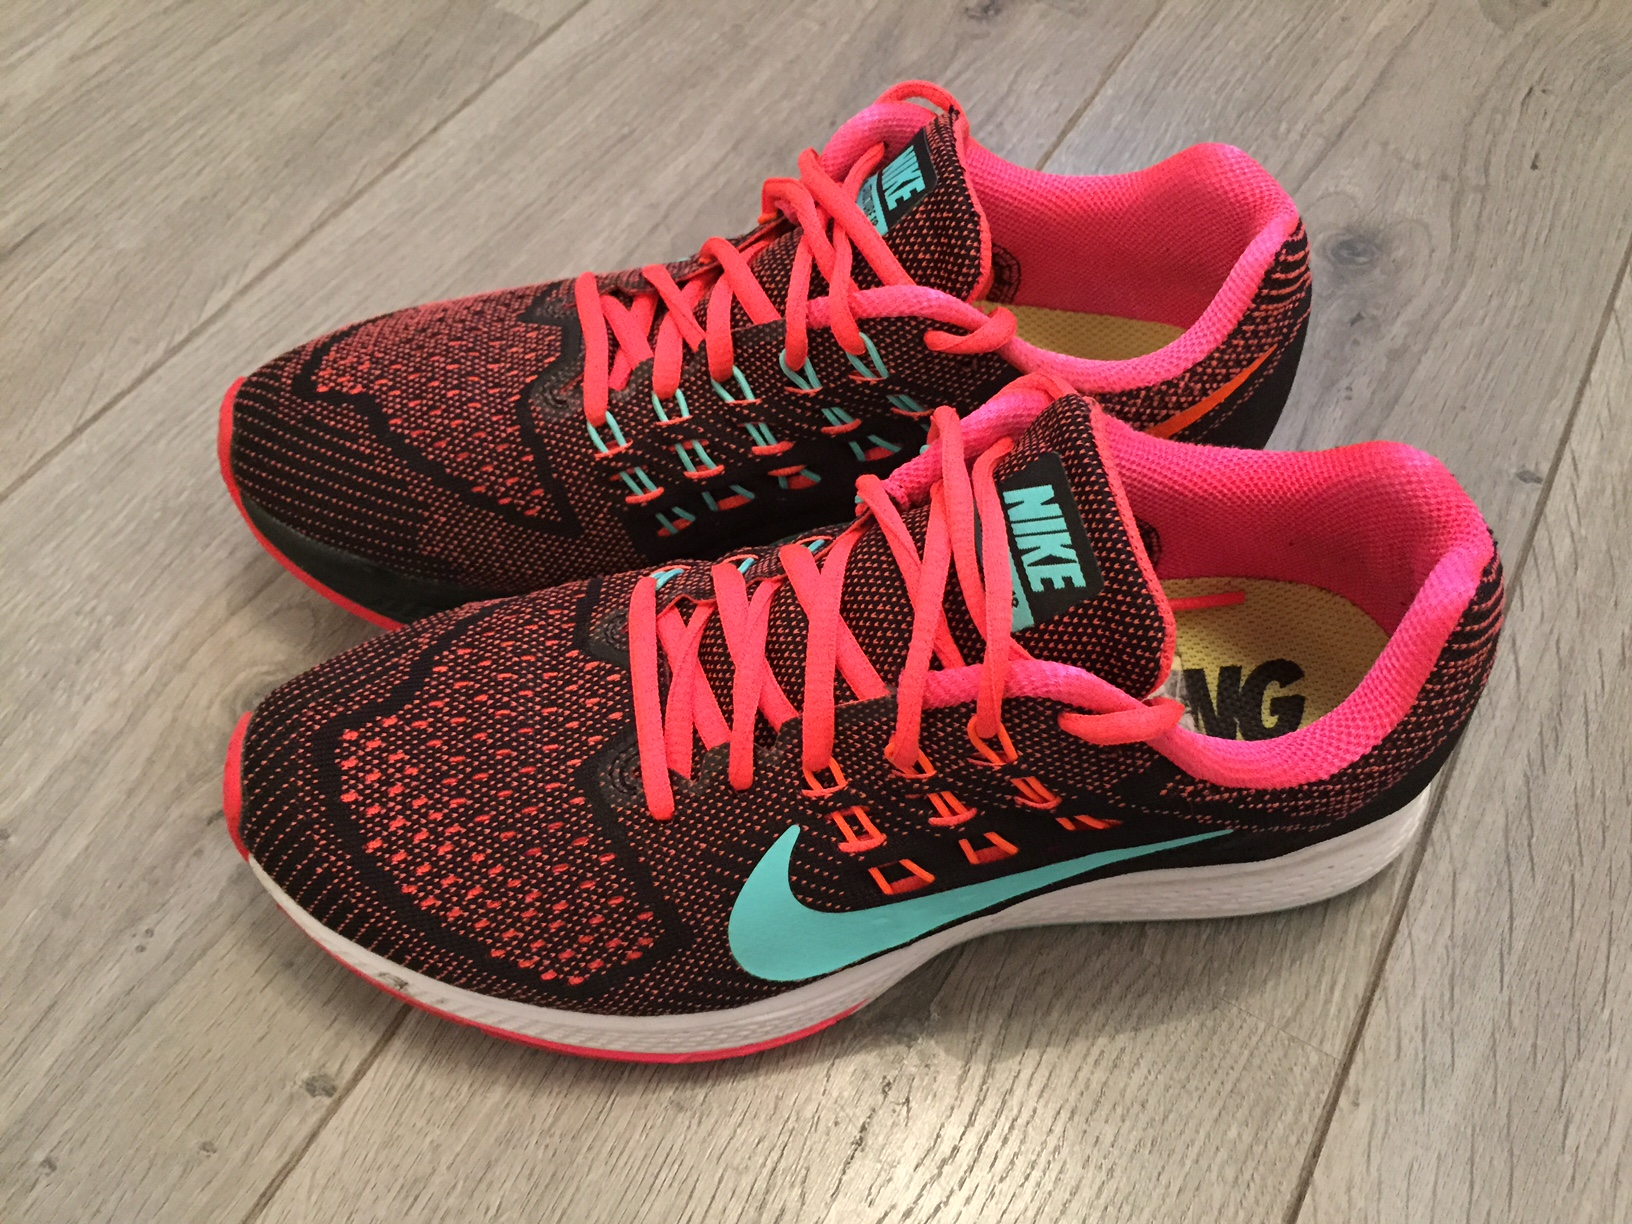 sale retailer 5337d 6830a Mijn Nike sportschoenen collectie - FOLLOWFITGIRLS